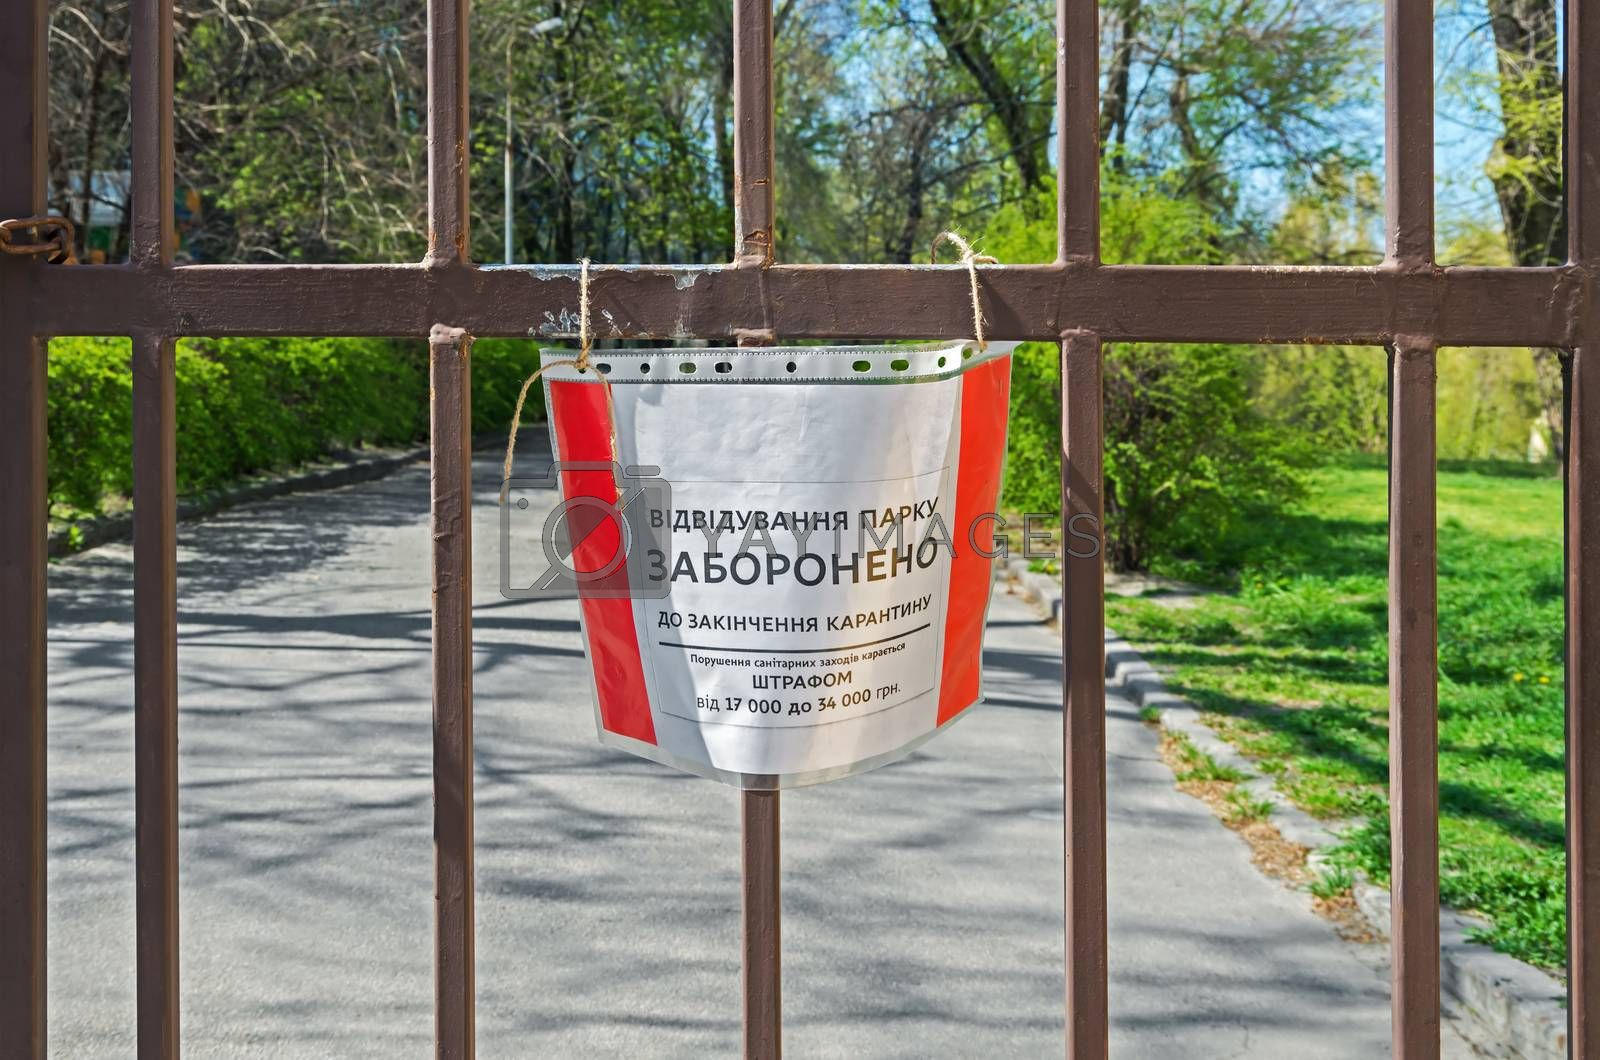 Lettering on plate - visiting the park is prohibited until end of quarantine. Violation of sanitary measures is punishable by fine from 17,000 to 34,000 hryvnia